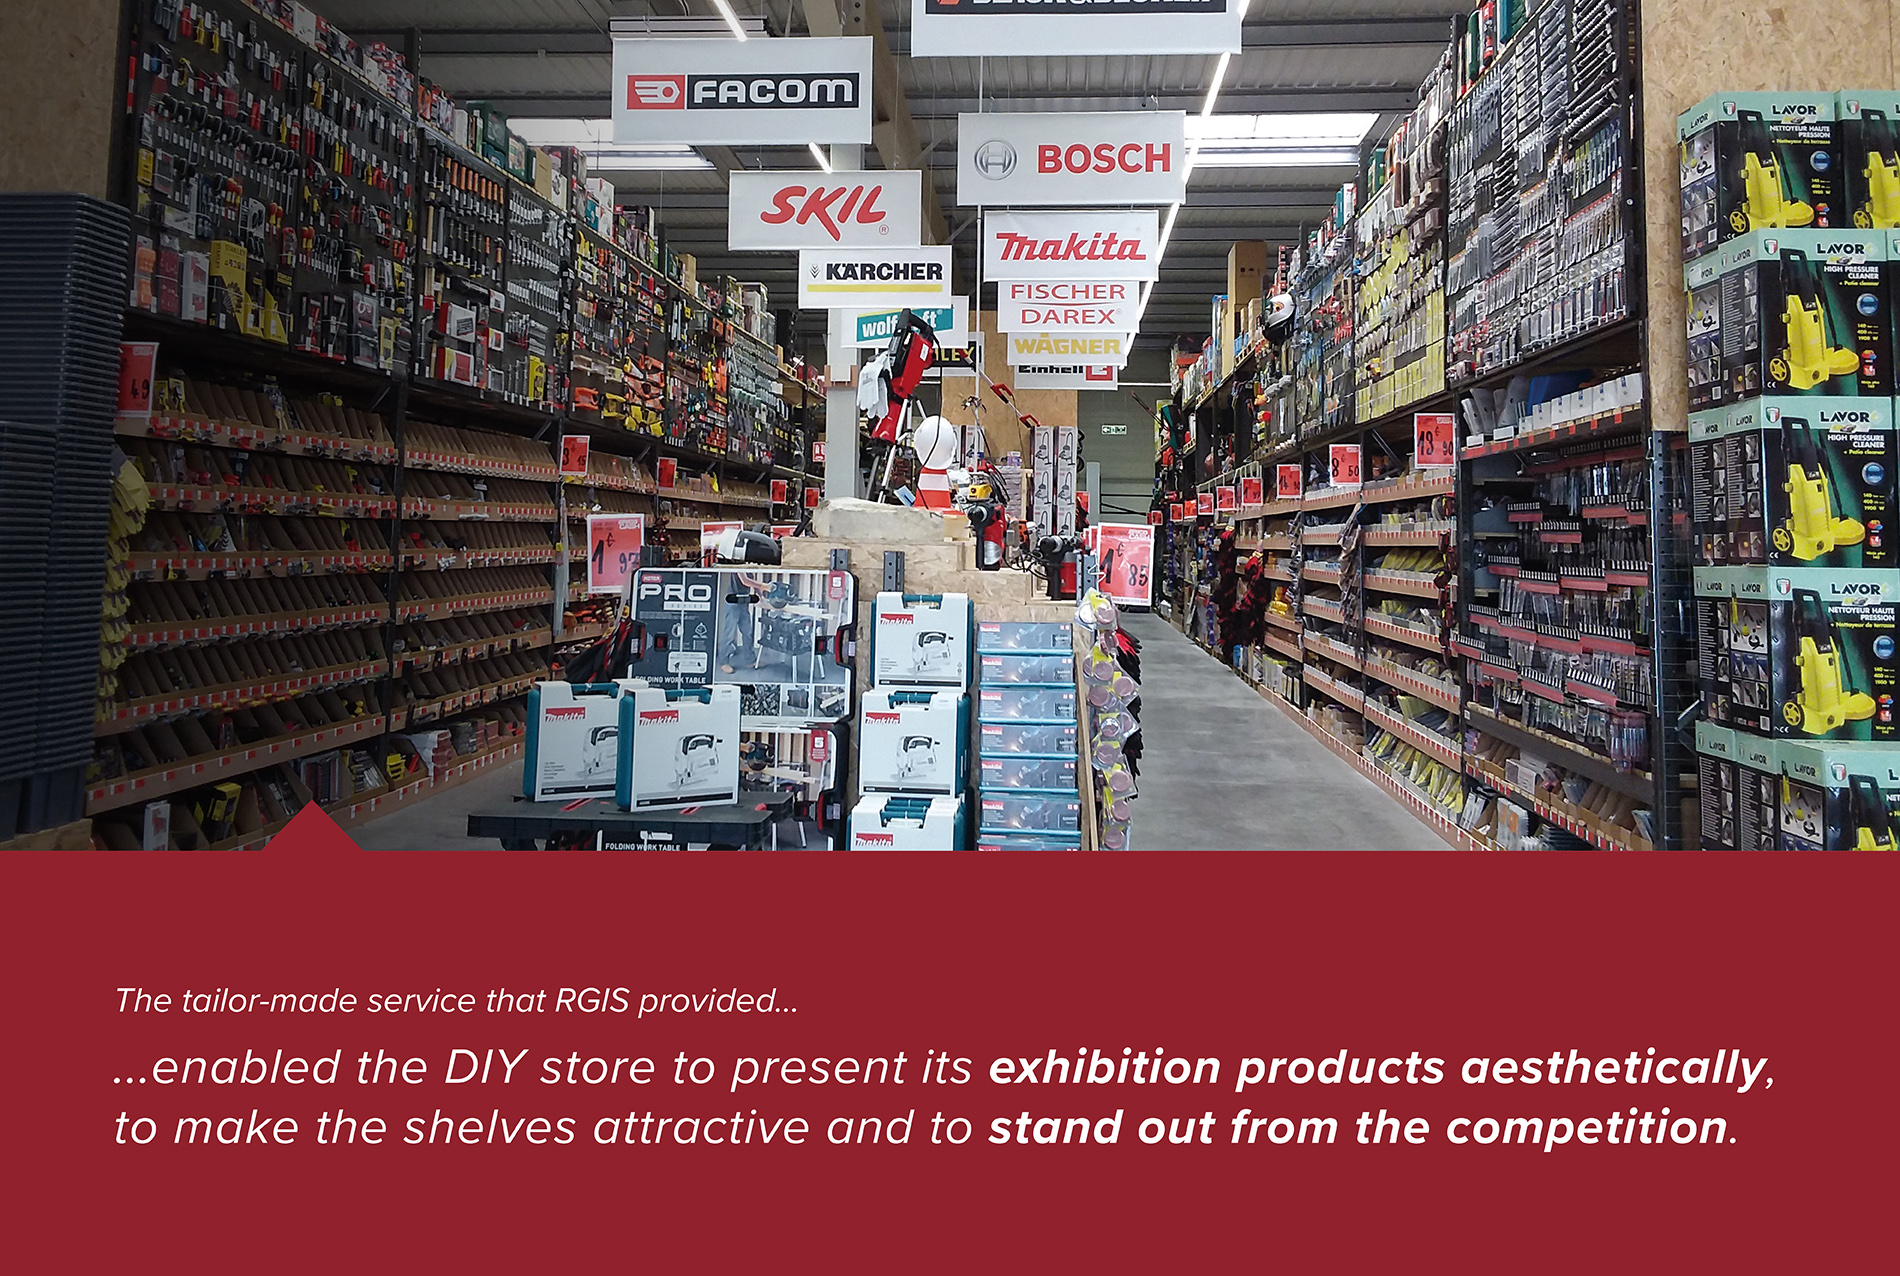 RGIS Case Study of Merchandising Exhibition Displays In-Store